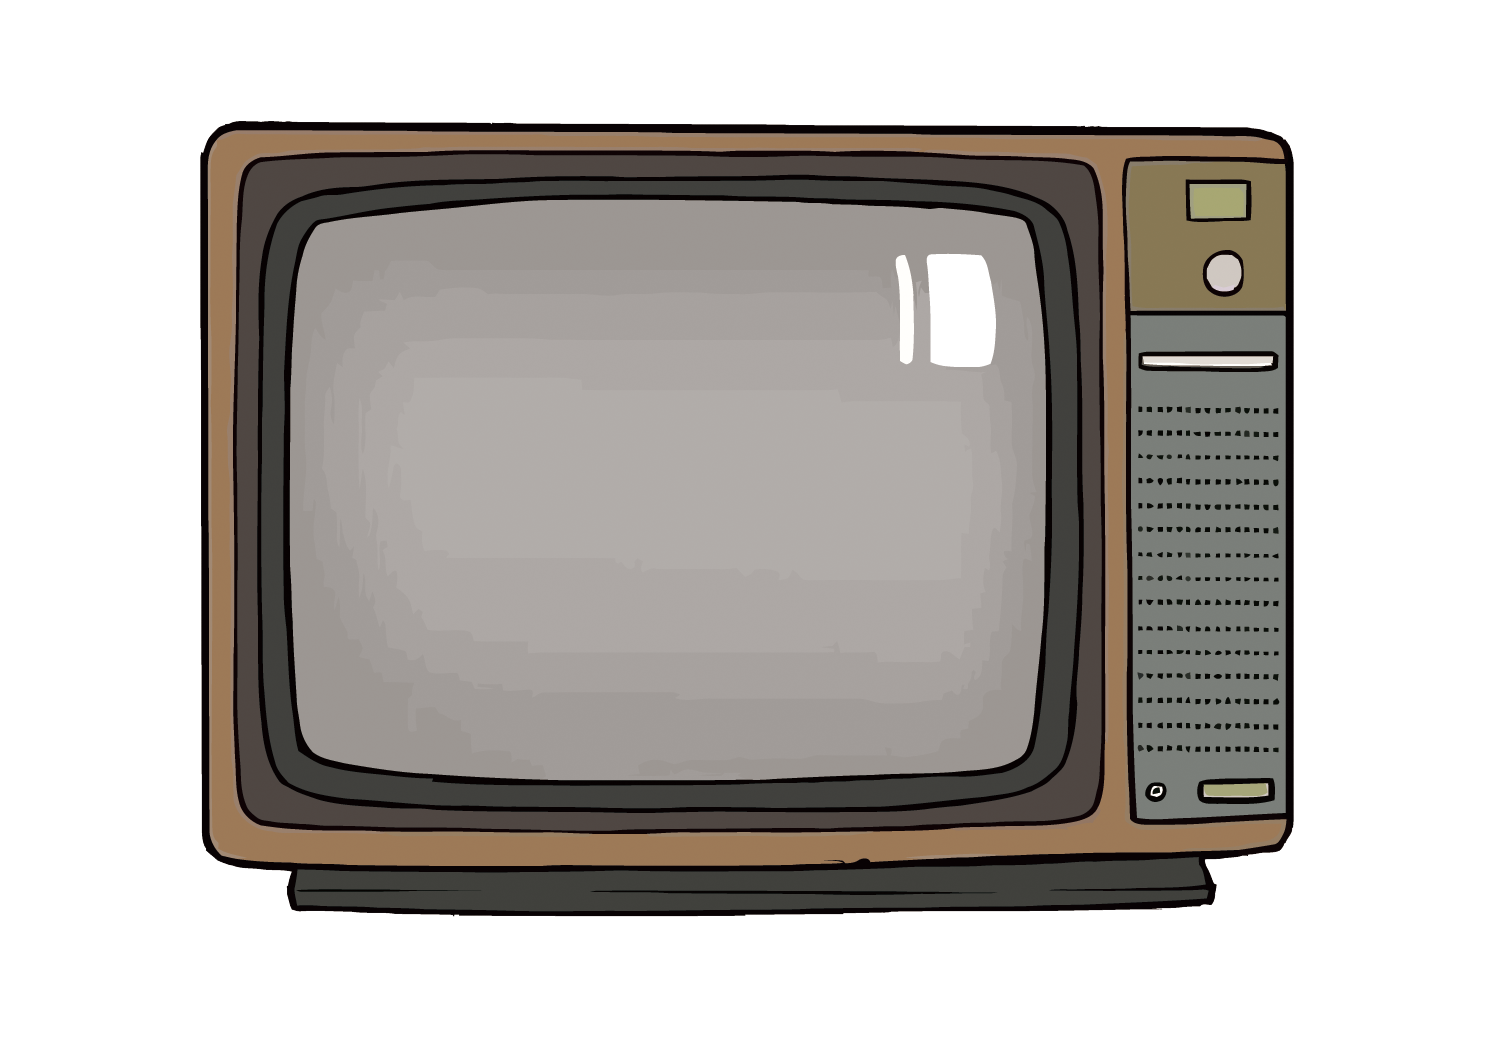 Television set png. High definition retro tv